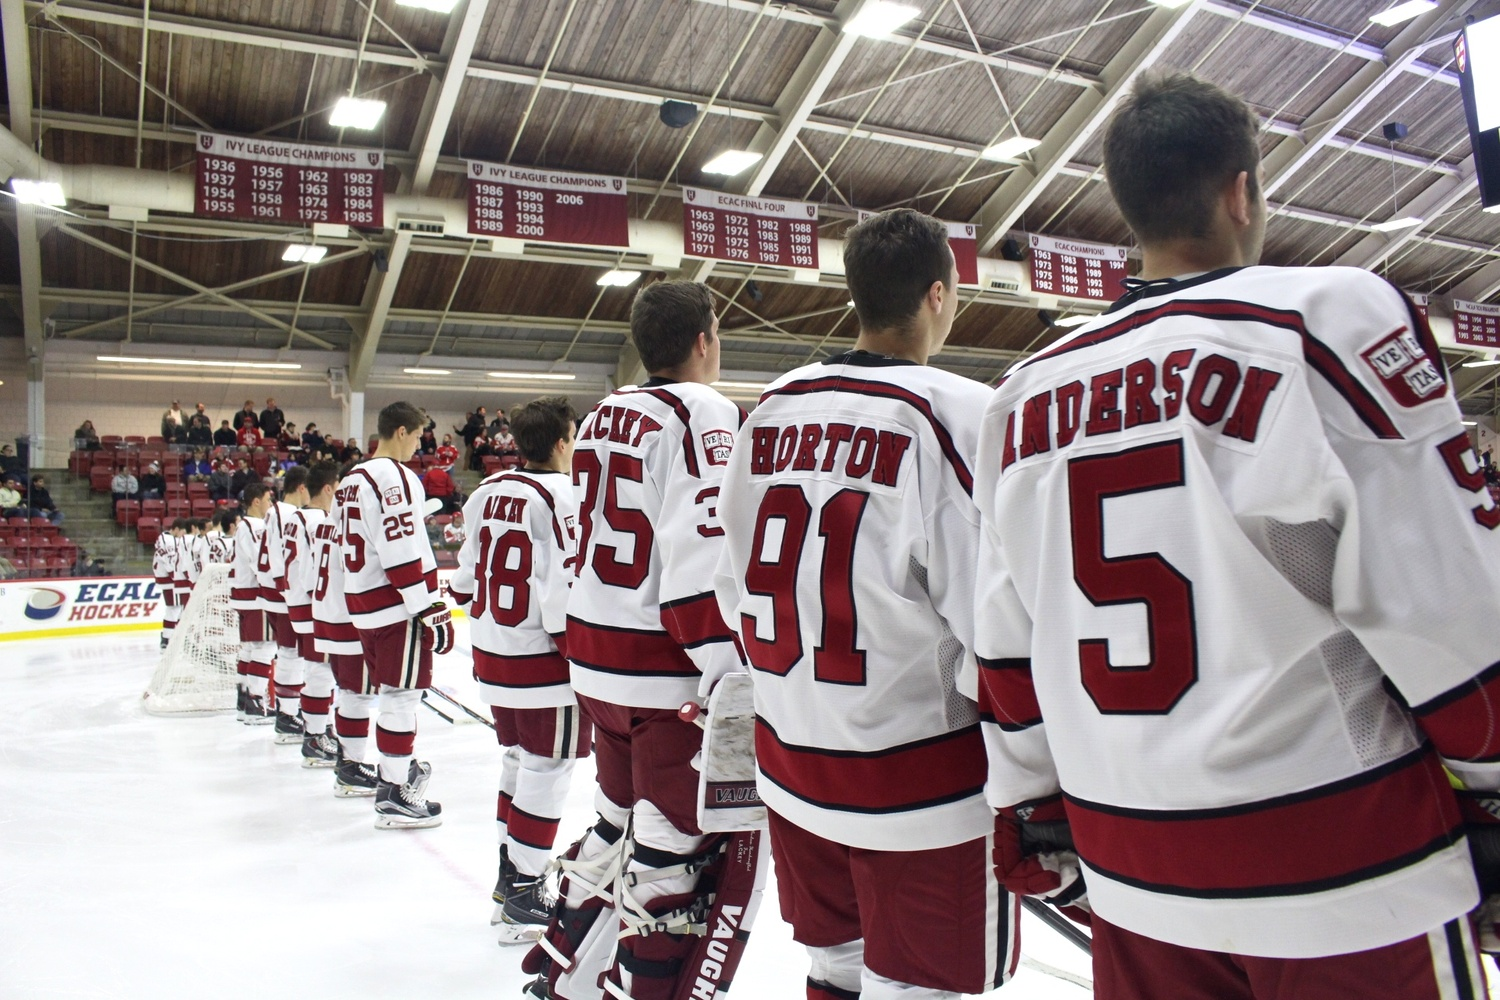 Over the course of the last few years, the team has come together on and off the ice to bring a stronger core of leadership to Harvard Hockey and establish a connection with the Harvard community.